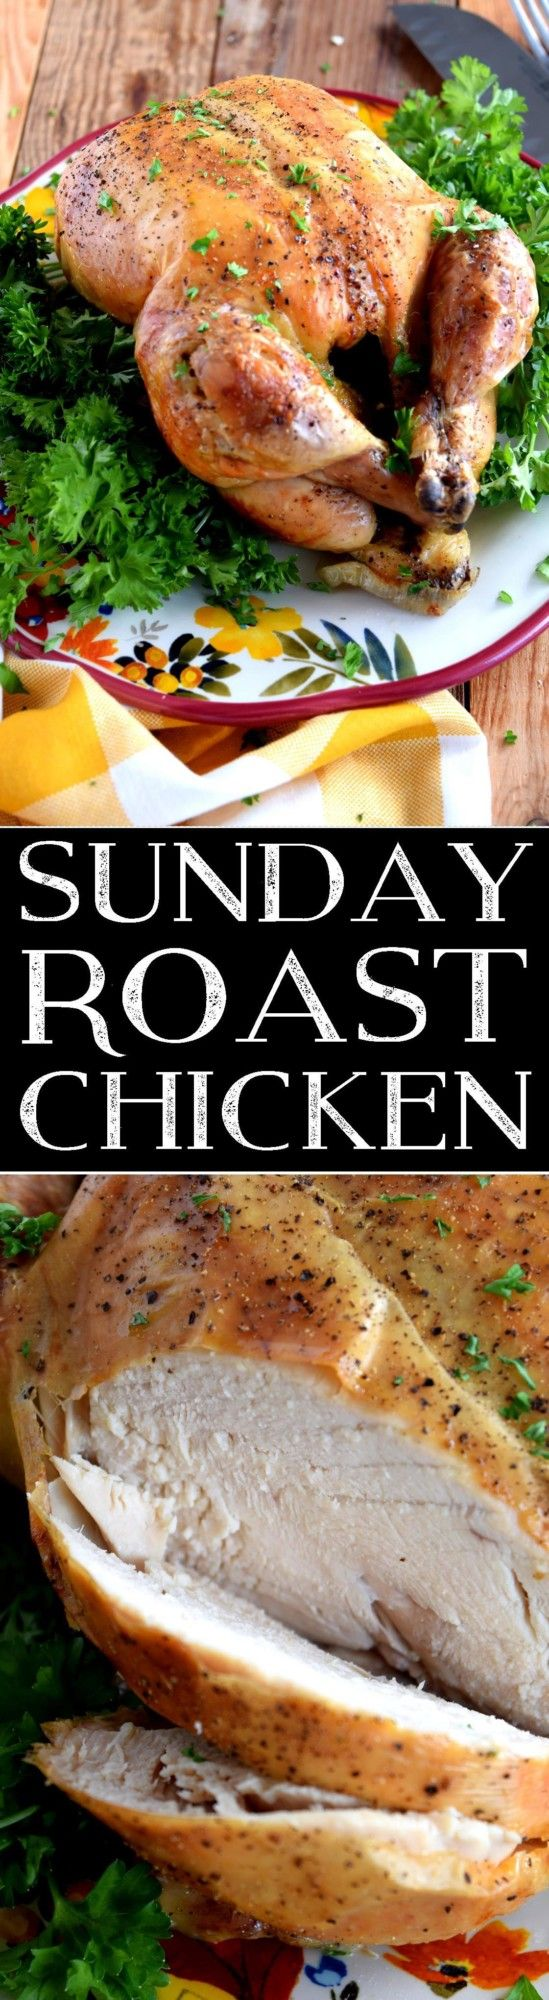 A slow-roasted chicken is a classic Sunday main, and when it comes to Sunday Roast Chicken, simple is best! No fuss, no mess; just home-style taste and a moist, deliciously seasoned whole chicken. A roasted chicken was a Sunday staple…